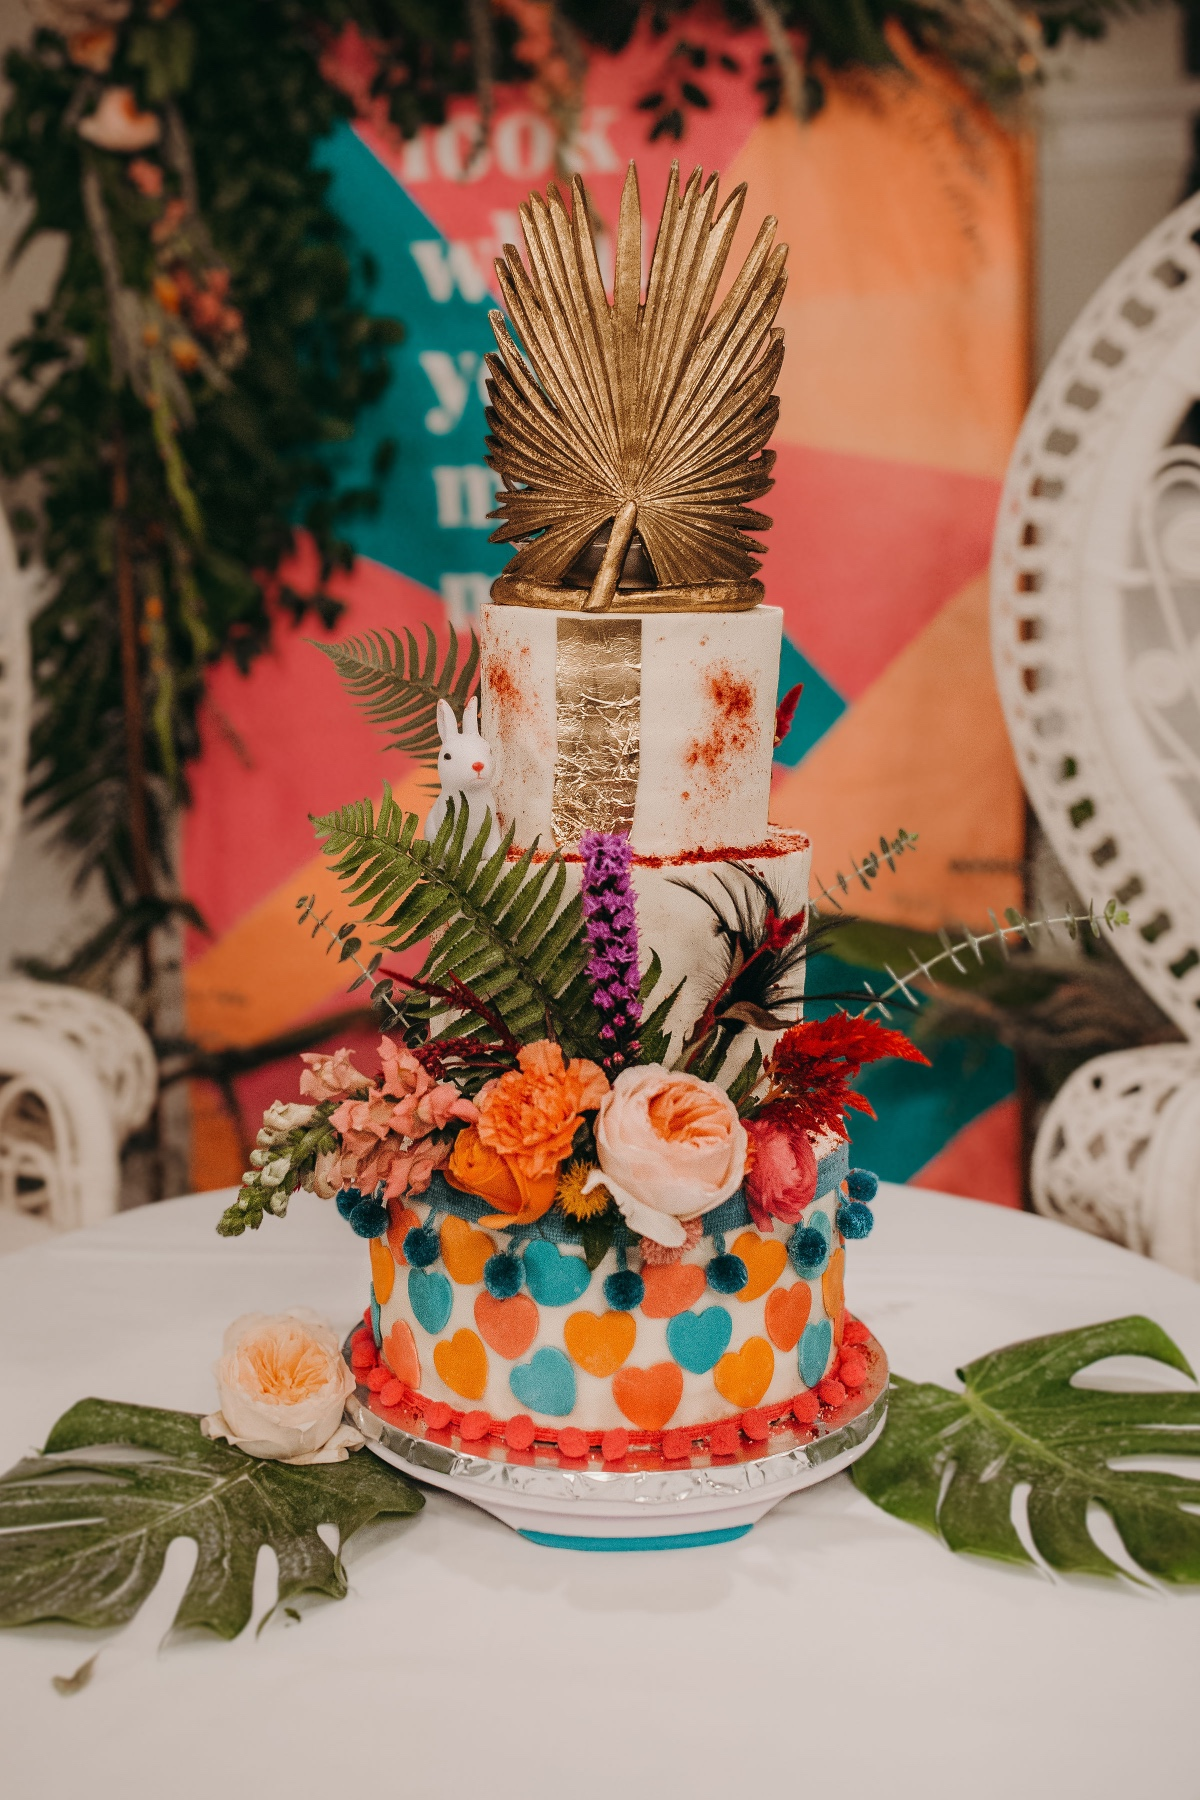 Eclectic Alice in Wonderland inspired wedding cake design